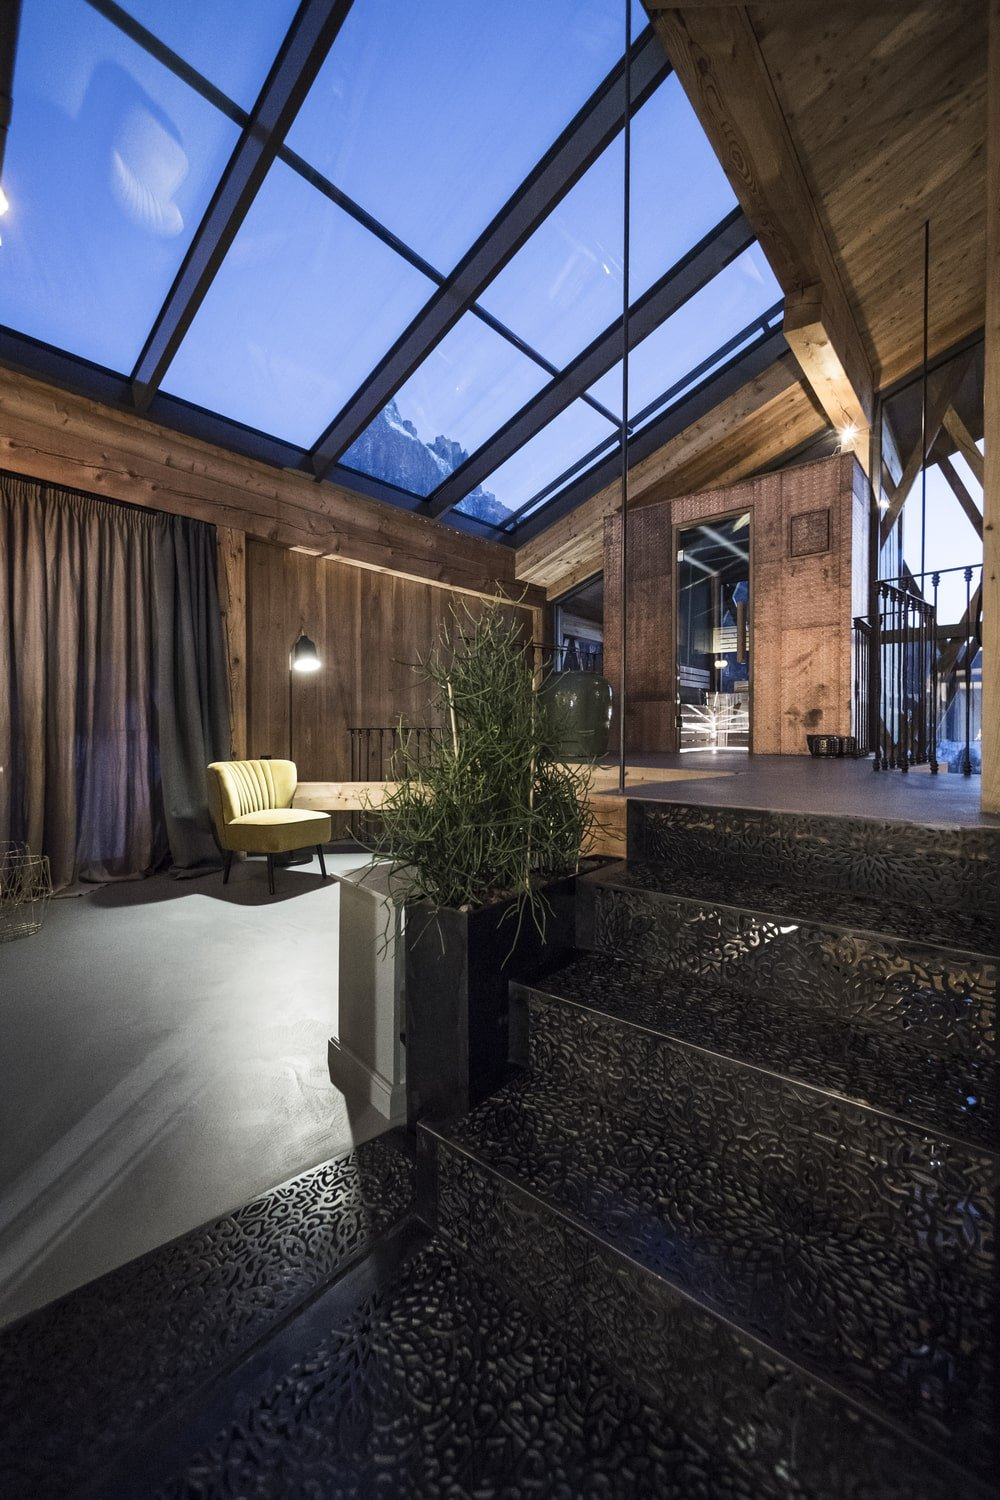 This is a view of the top floor that has a large glass skylight.